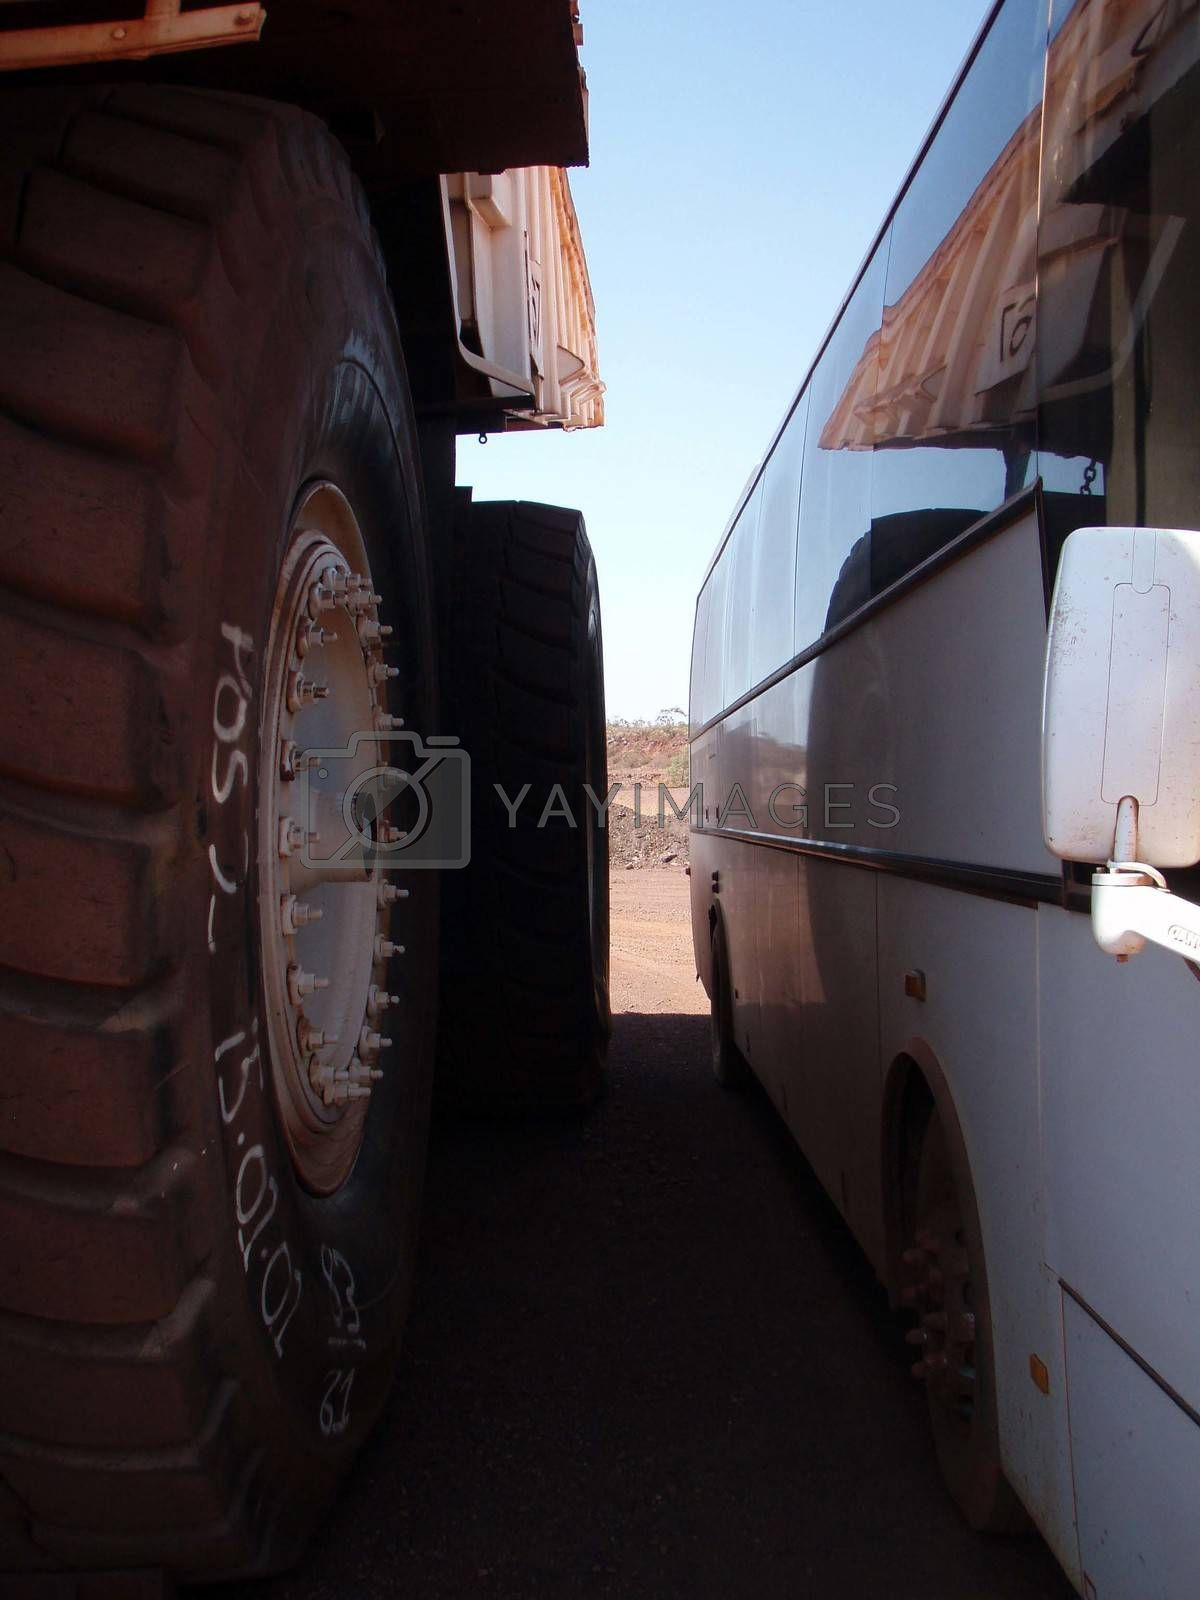 different tires on different motor vehicles, big truck and bus